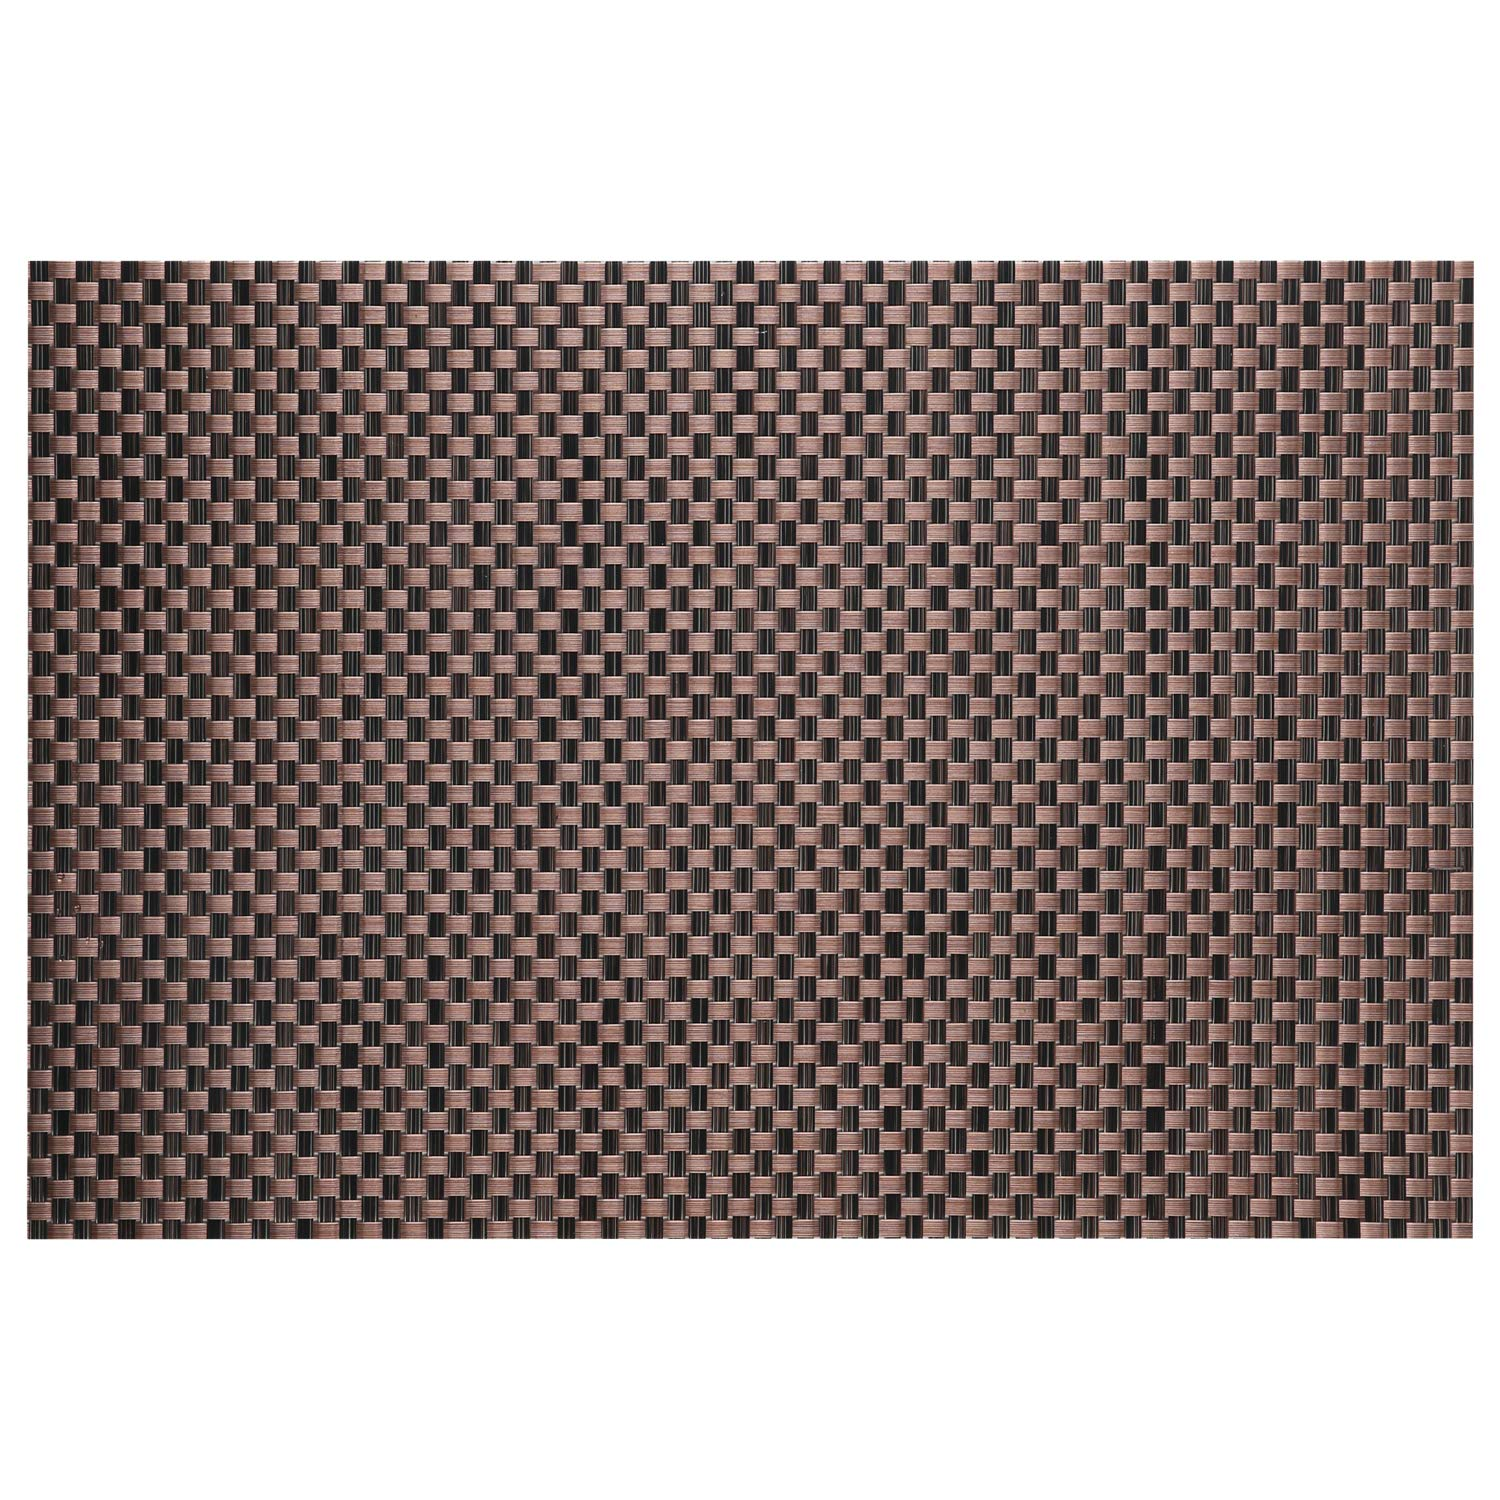 Top Finel Table Mats Sets Crossweave PVC Washable Stain Resistant Durable Dining Table Outdoor,Brown,Set of 8 by Top Finel (Image #2)